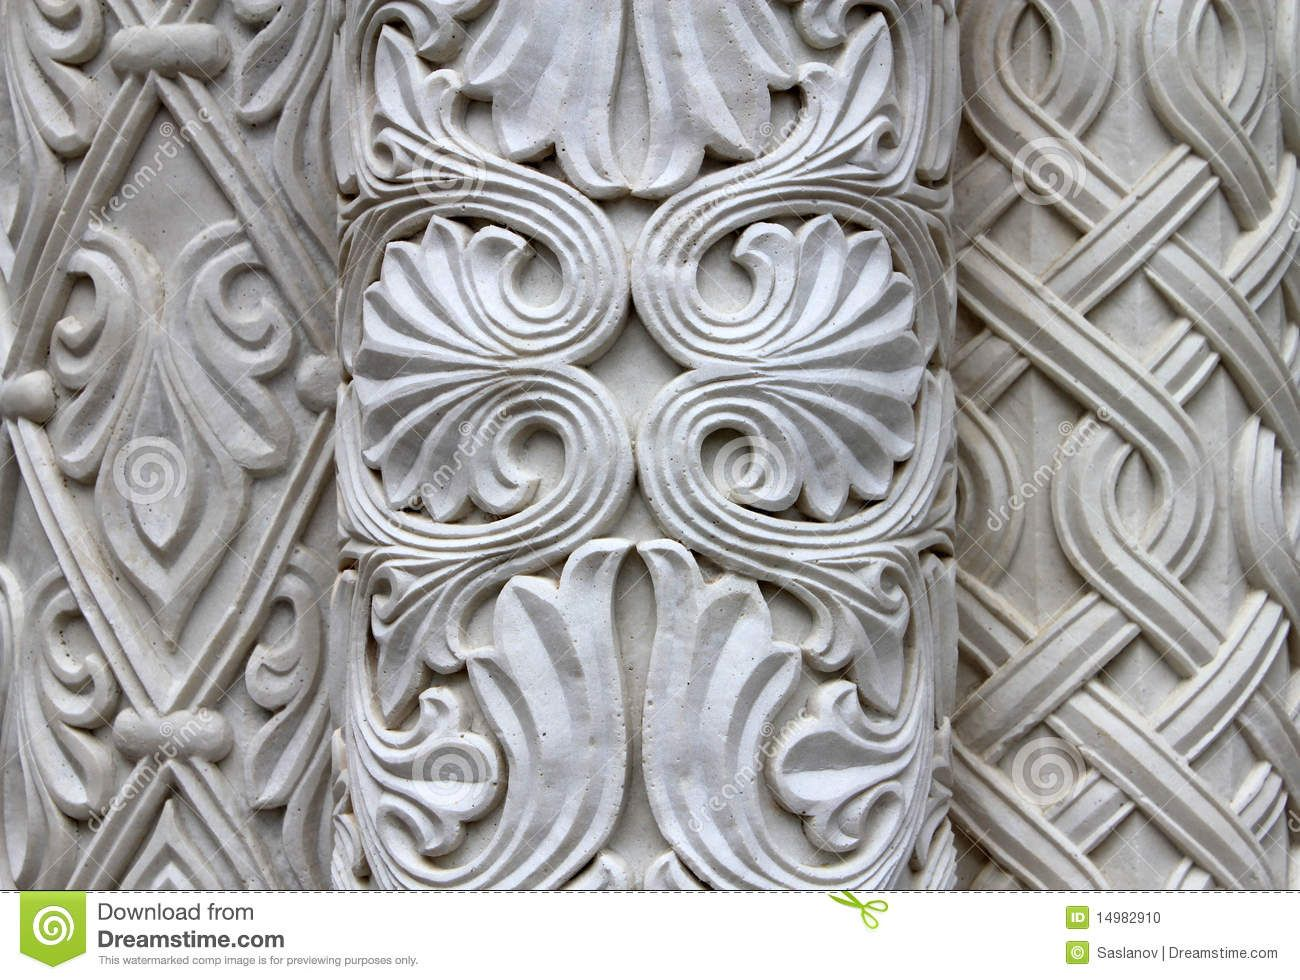 Related keywords suggestions for stone carving